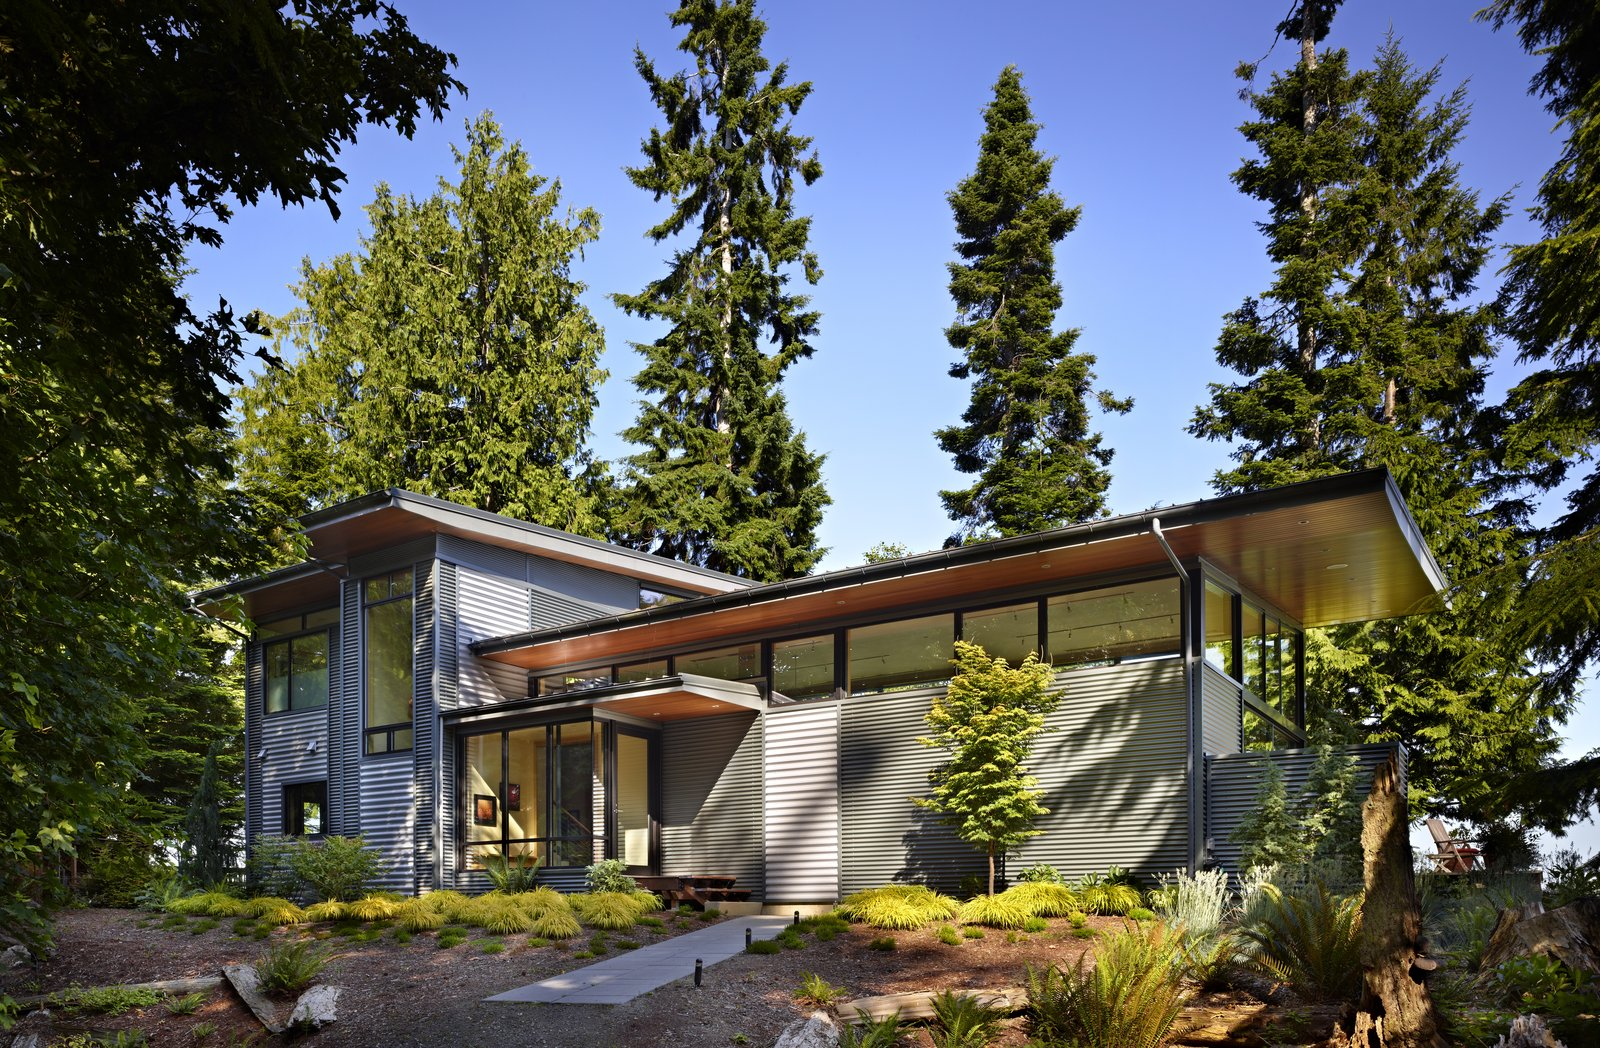 Exterior, Metal Siding Material, Metal Roof Material, House Building Type, and Shed RoofLine Exterior view of house on west side, showing entry walkway and front door  Port Ludlow House by FINNE Architects